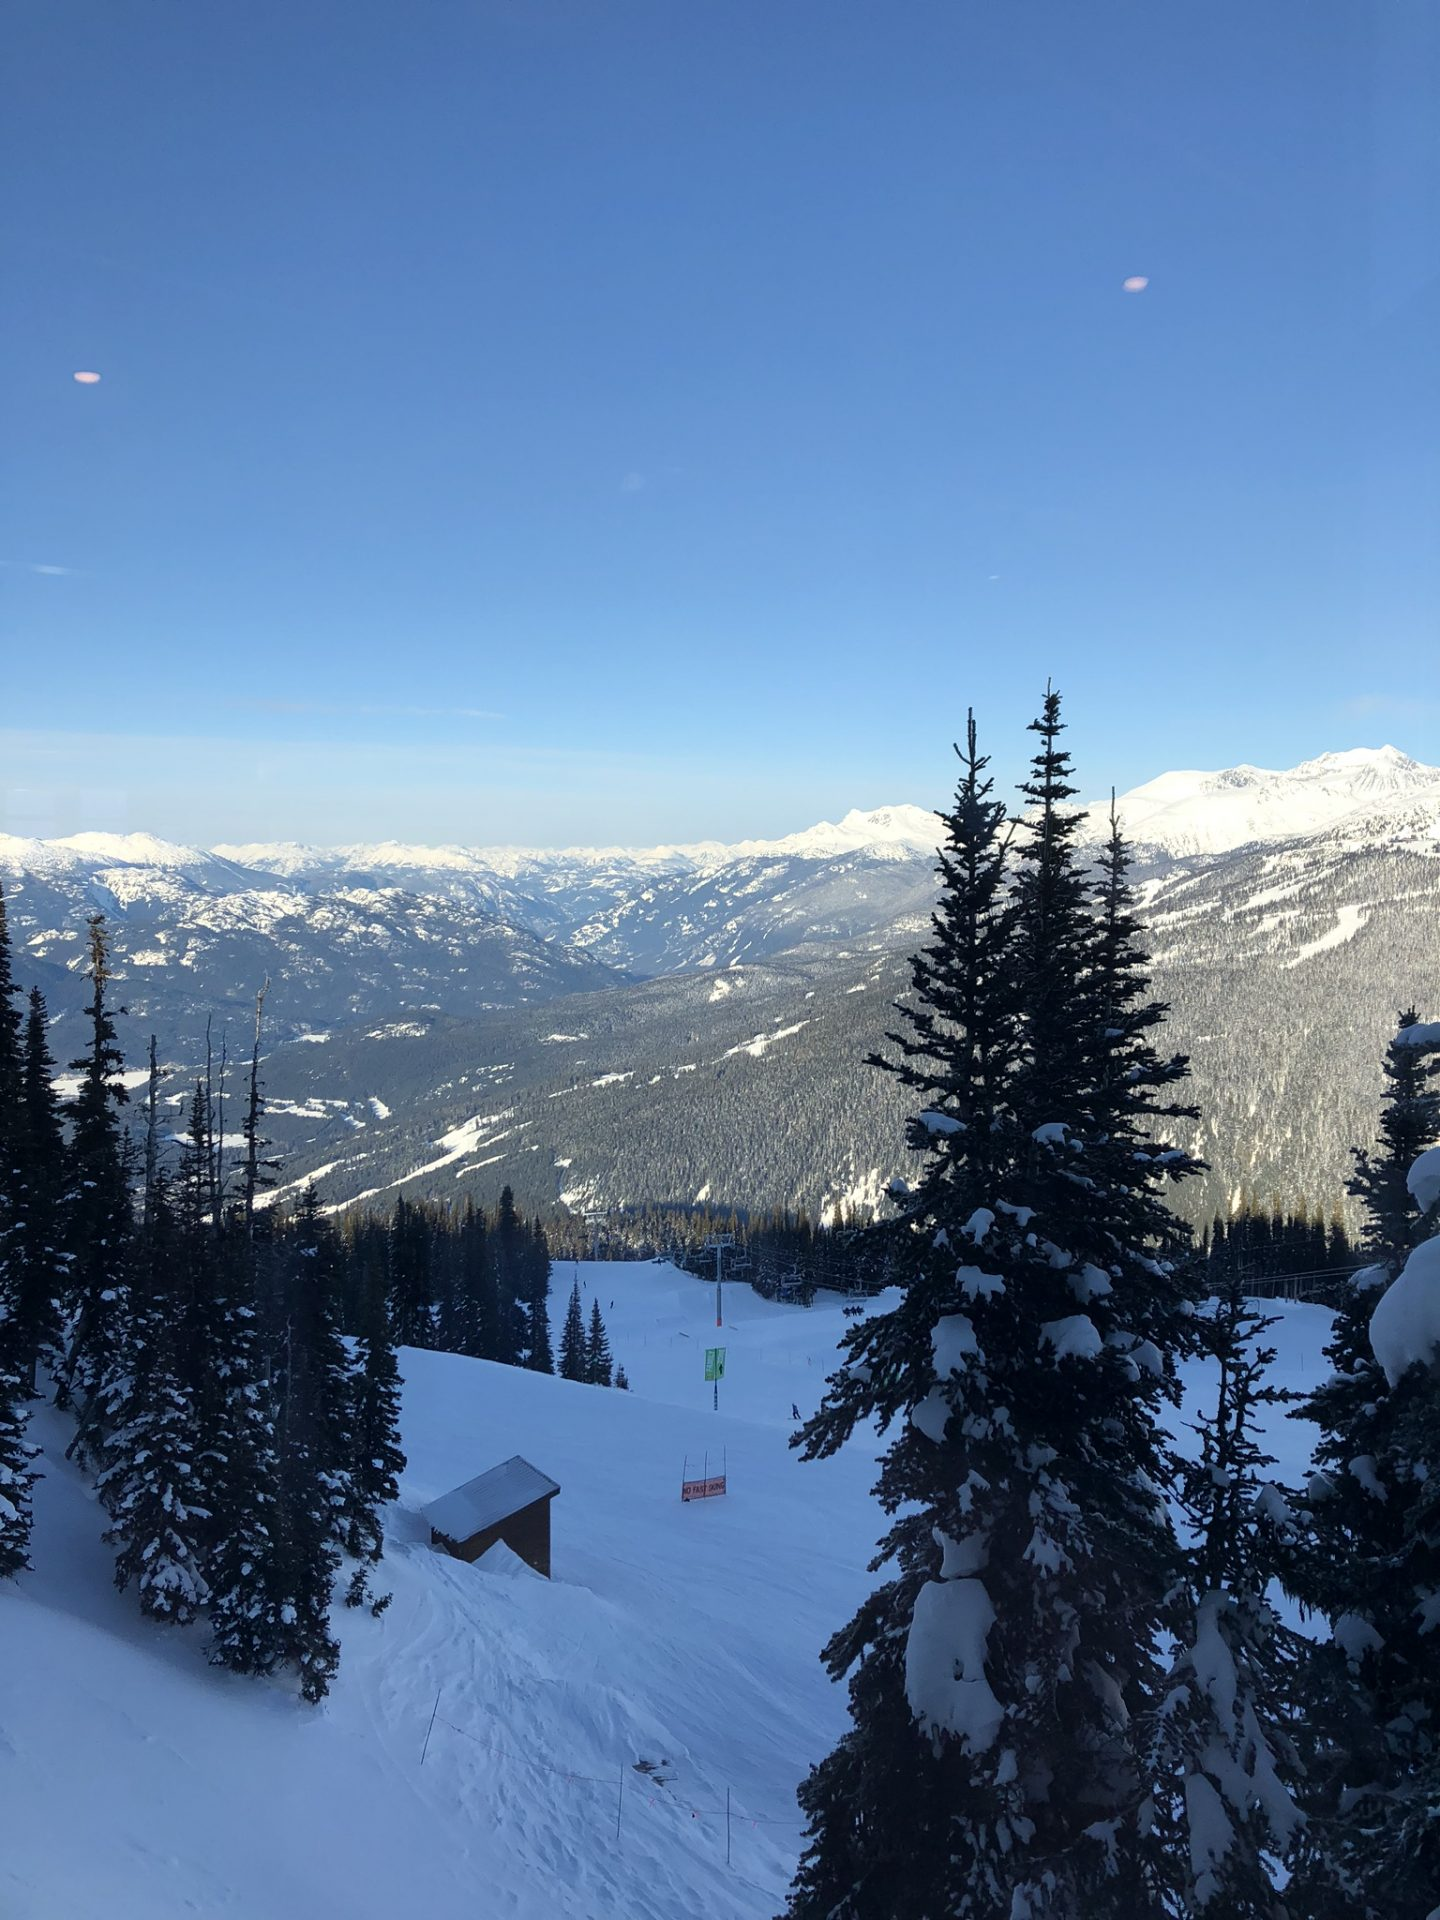 Views over Whistler, British Columbia